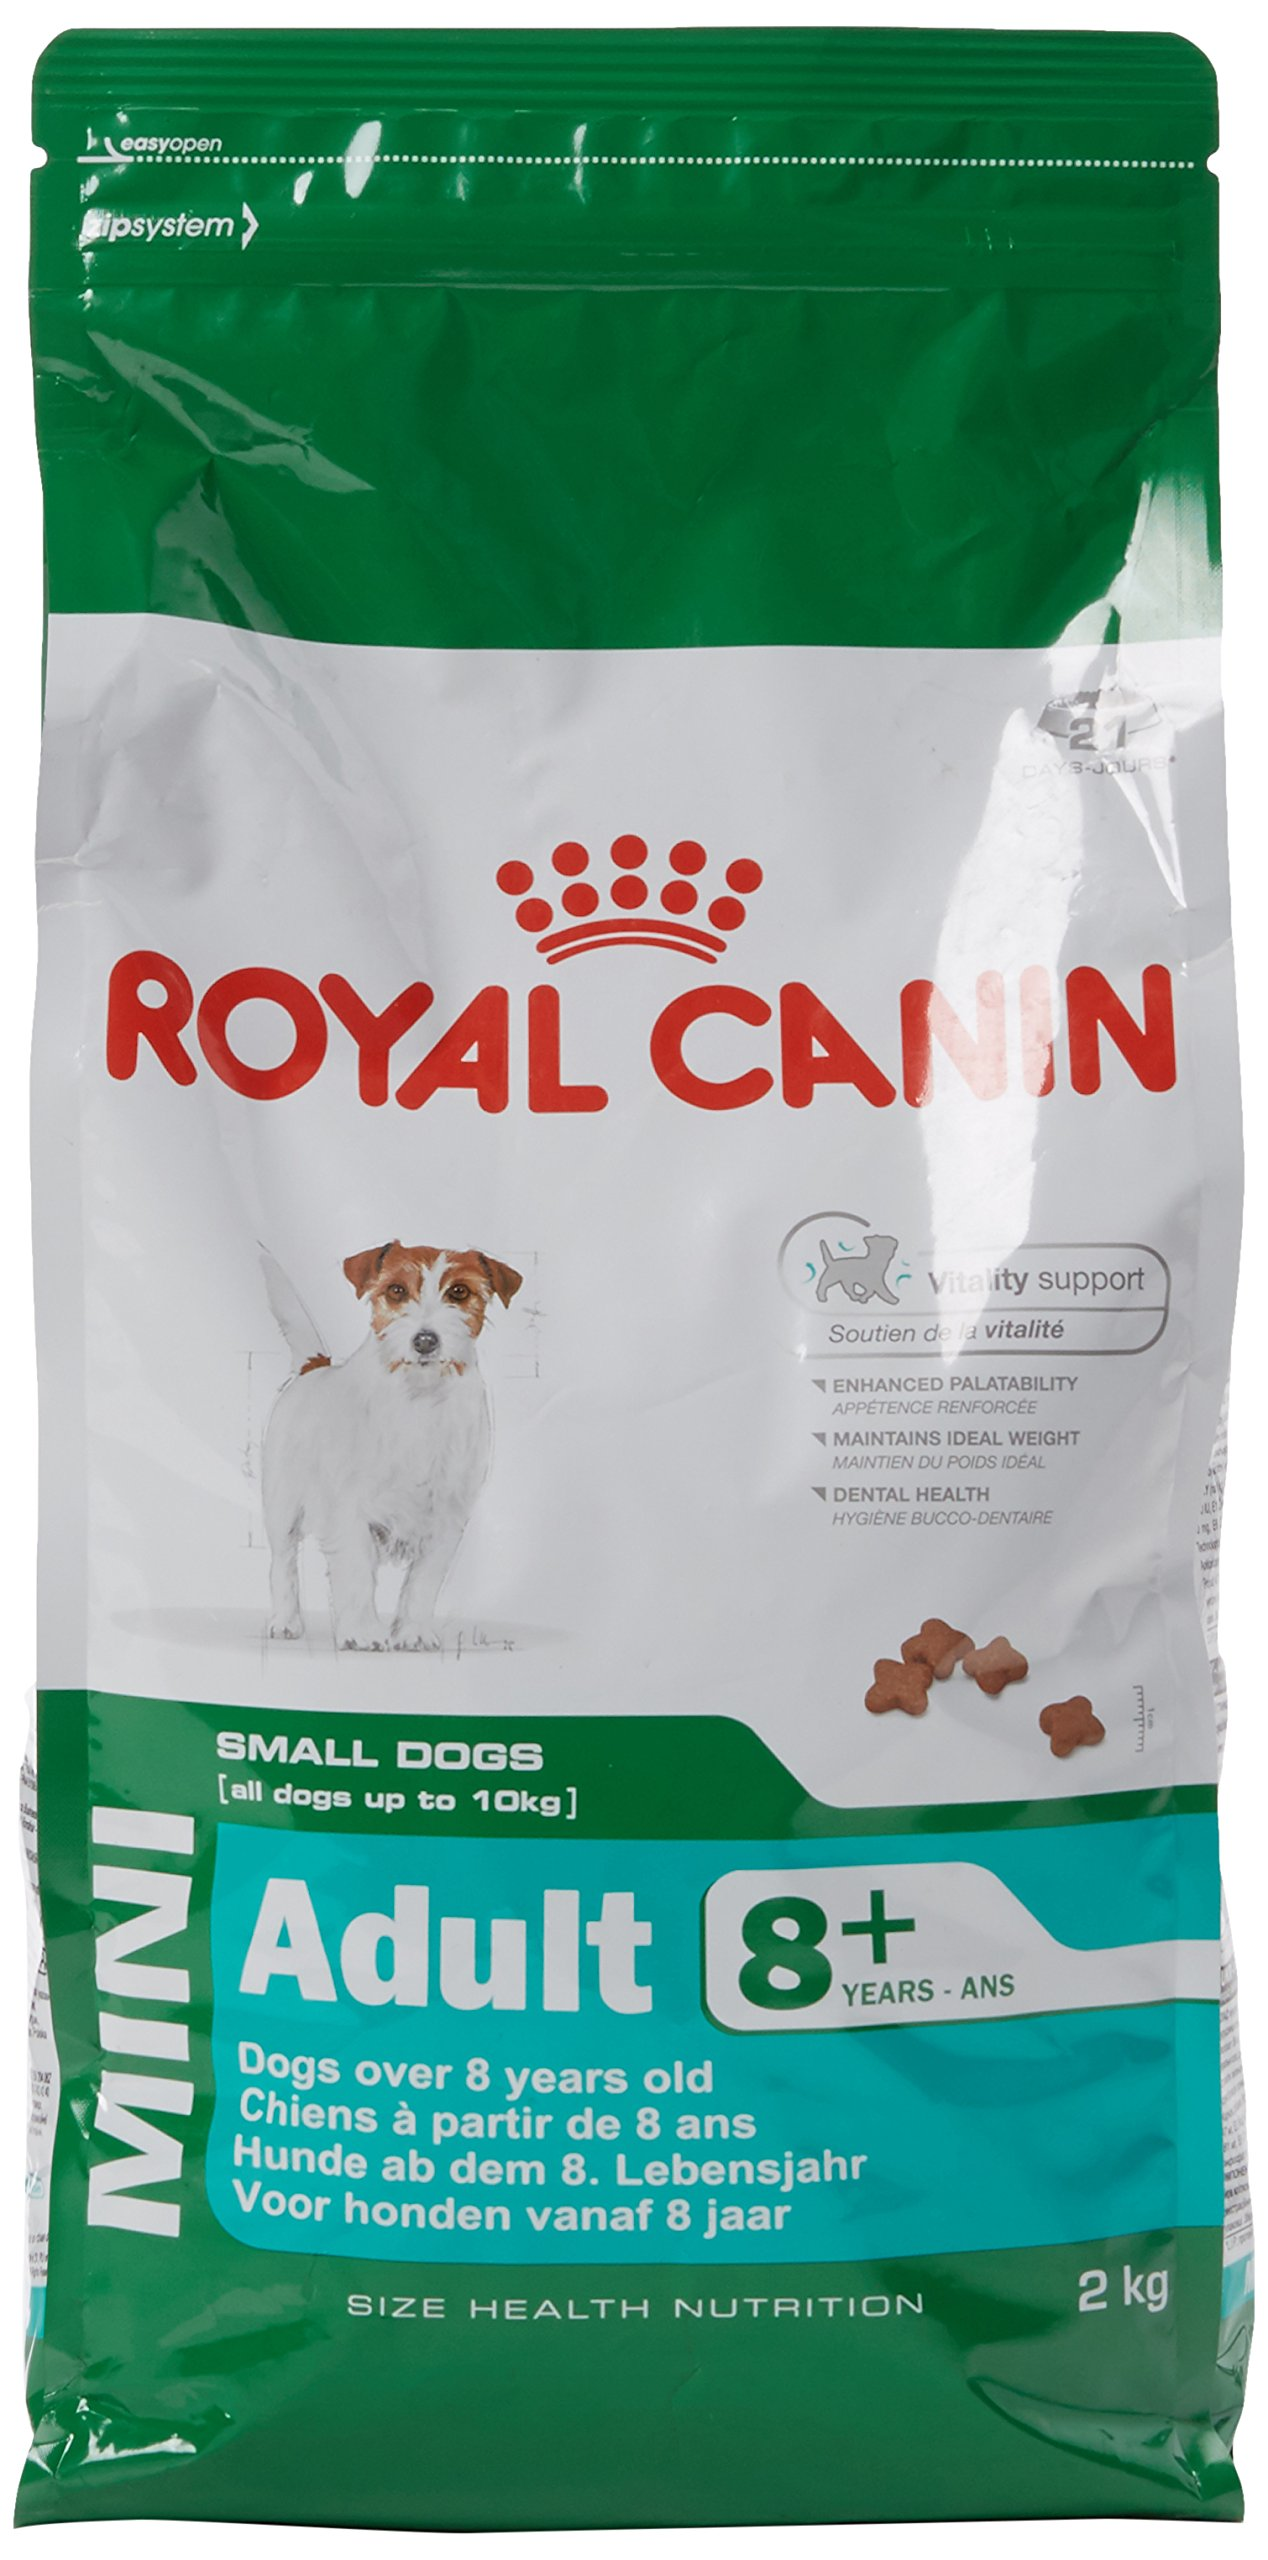 royal canin dog food mini adult 2kg supplies pet dry dog. Black Bedroom Furniture Sets. Home Design Ideas